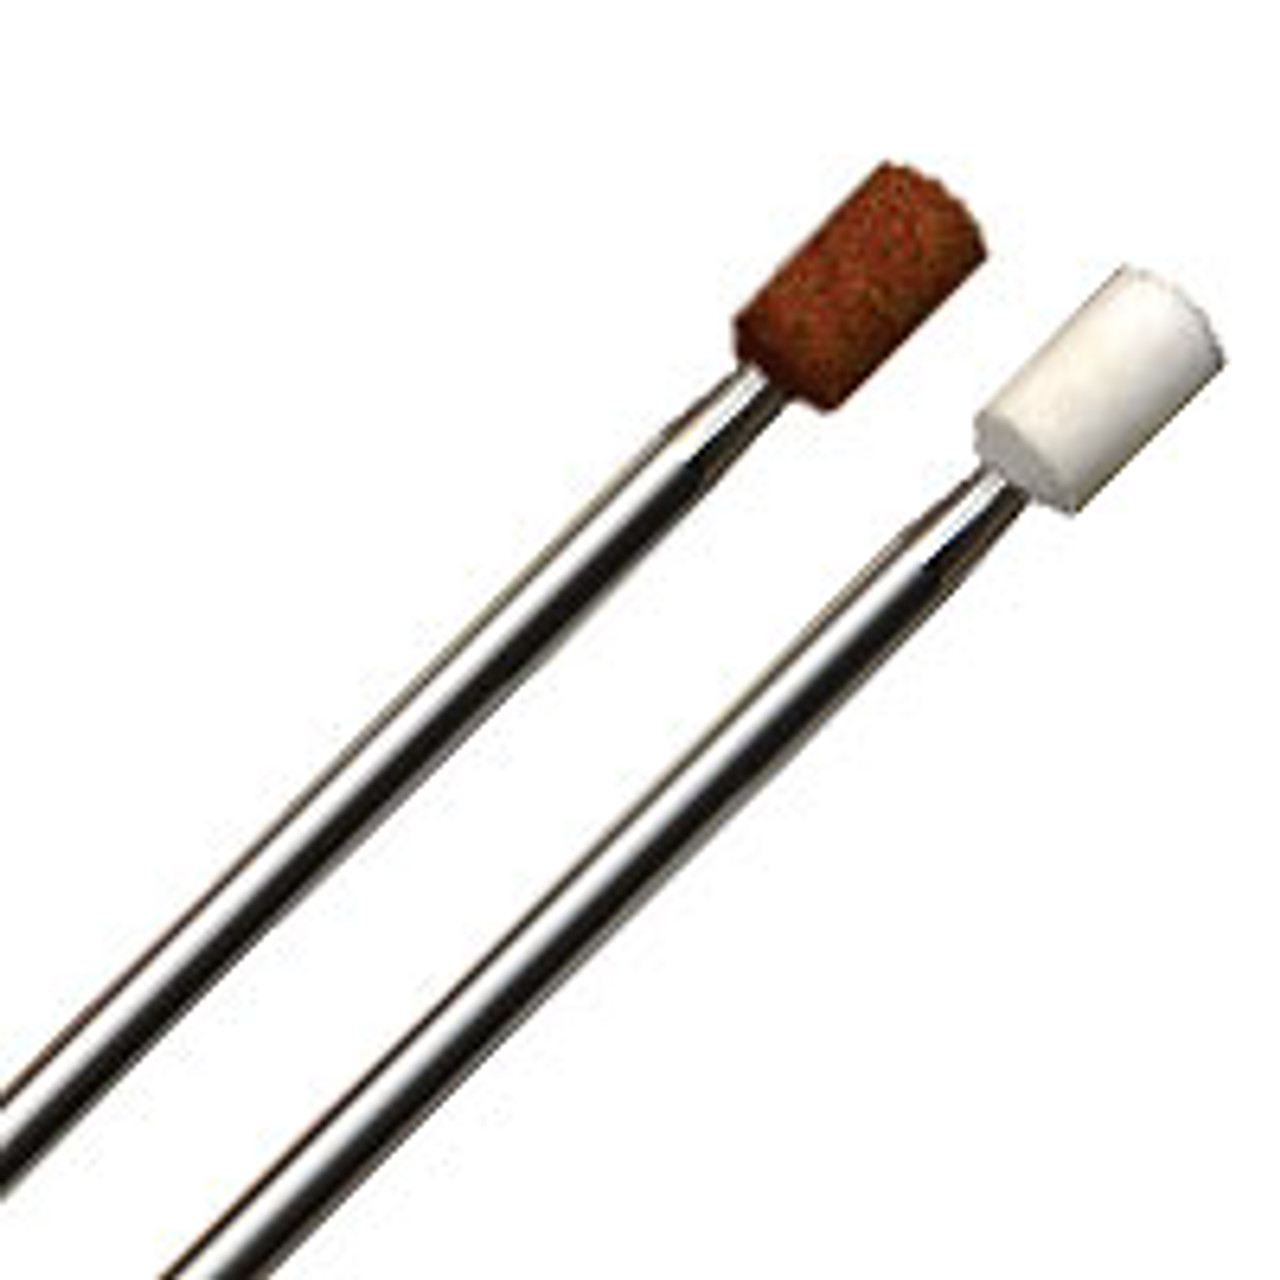 Aluminum Oxide Point Cylinder (Red) Coarse grit. and (White) Fine grit.